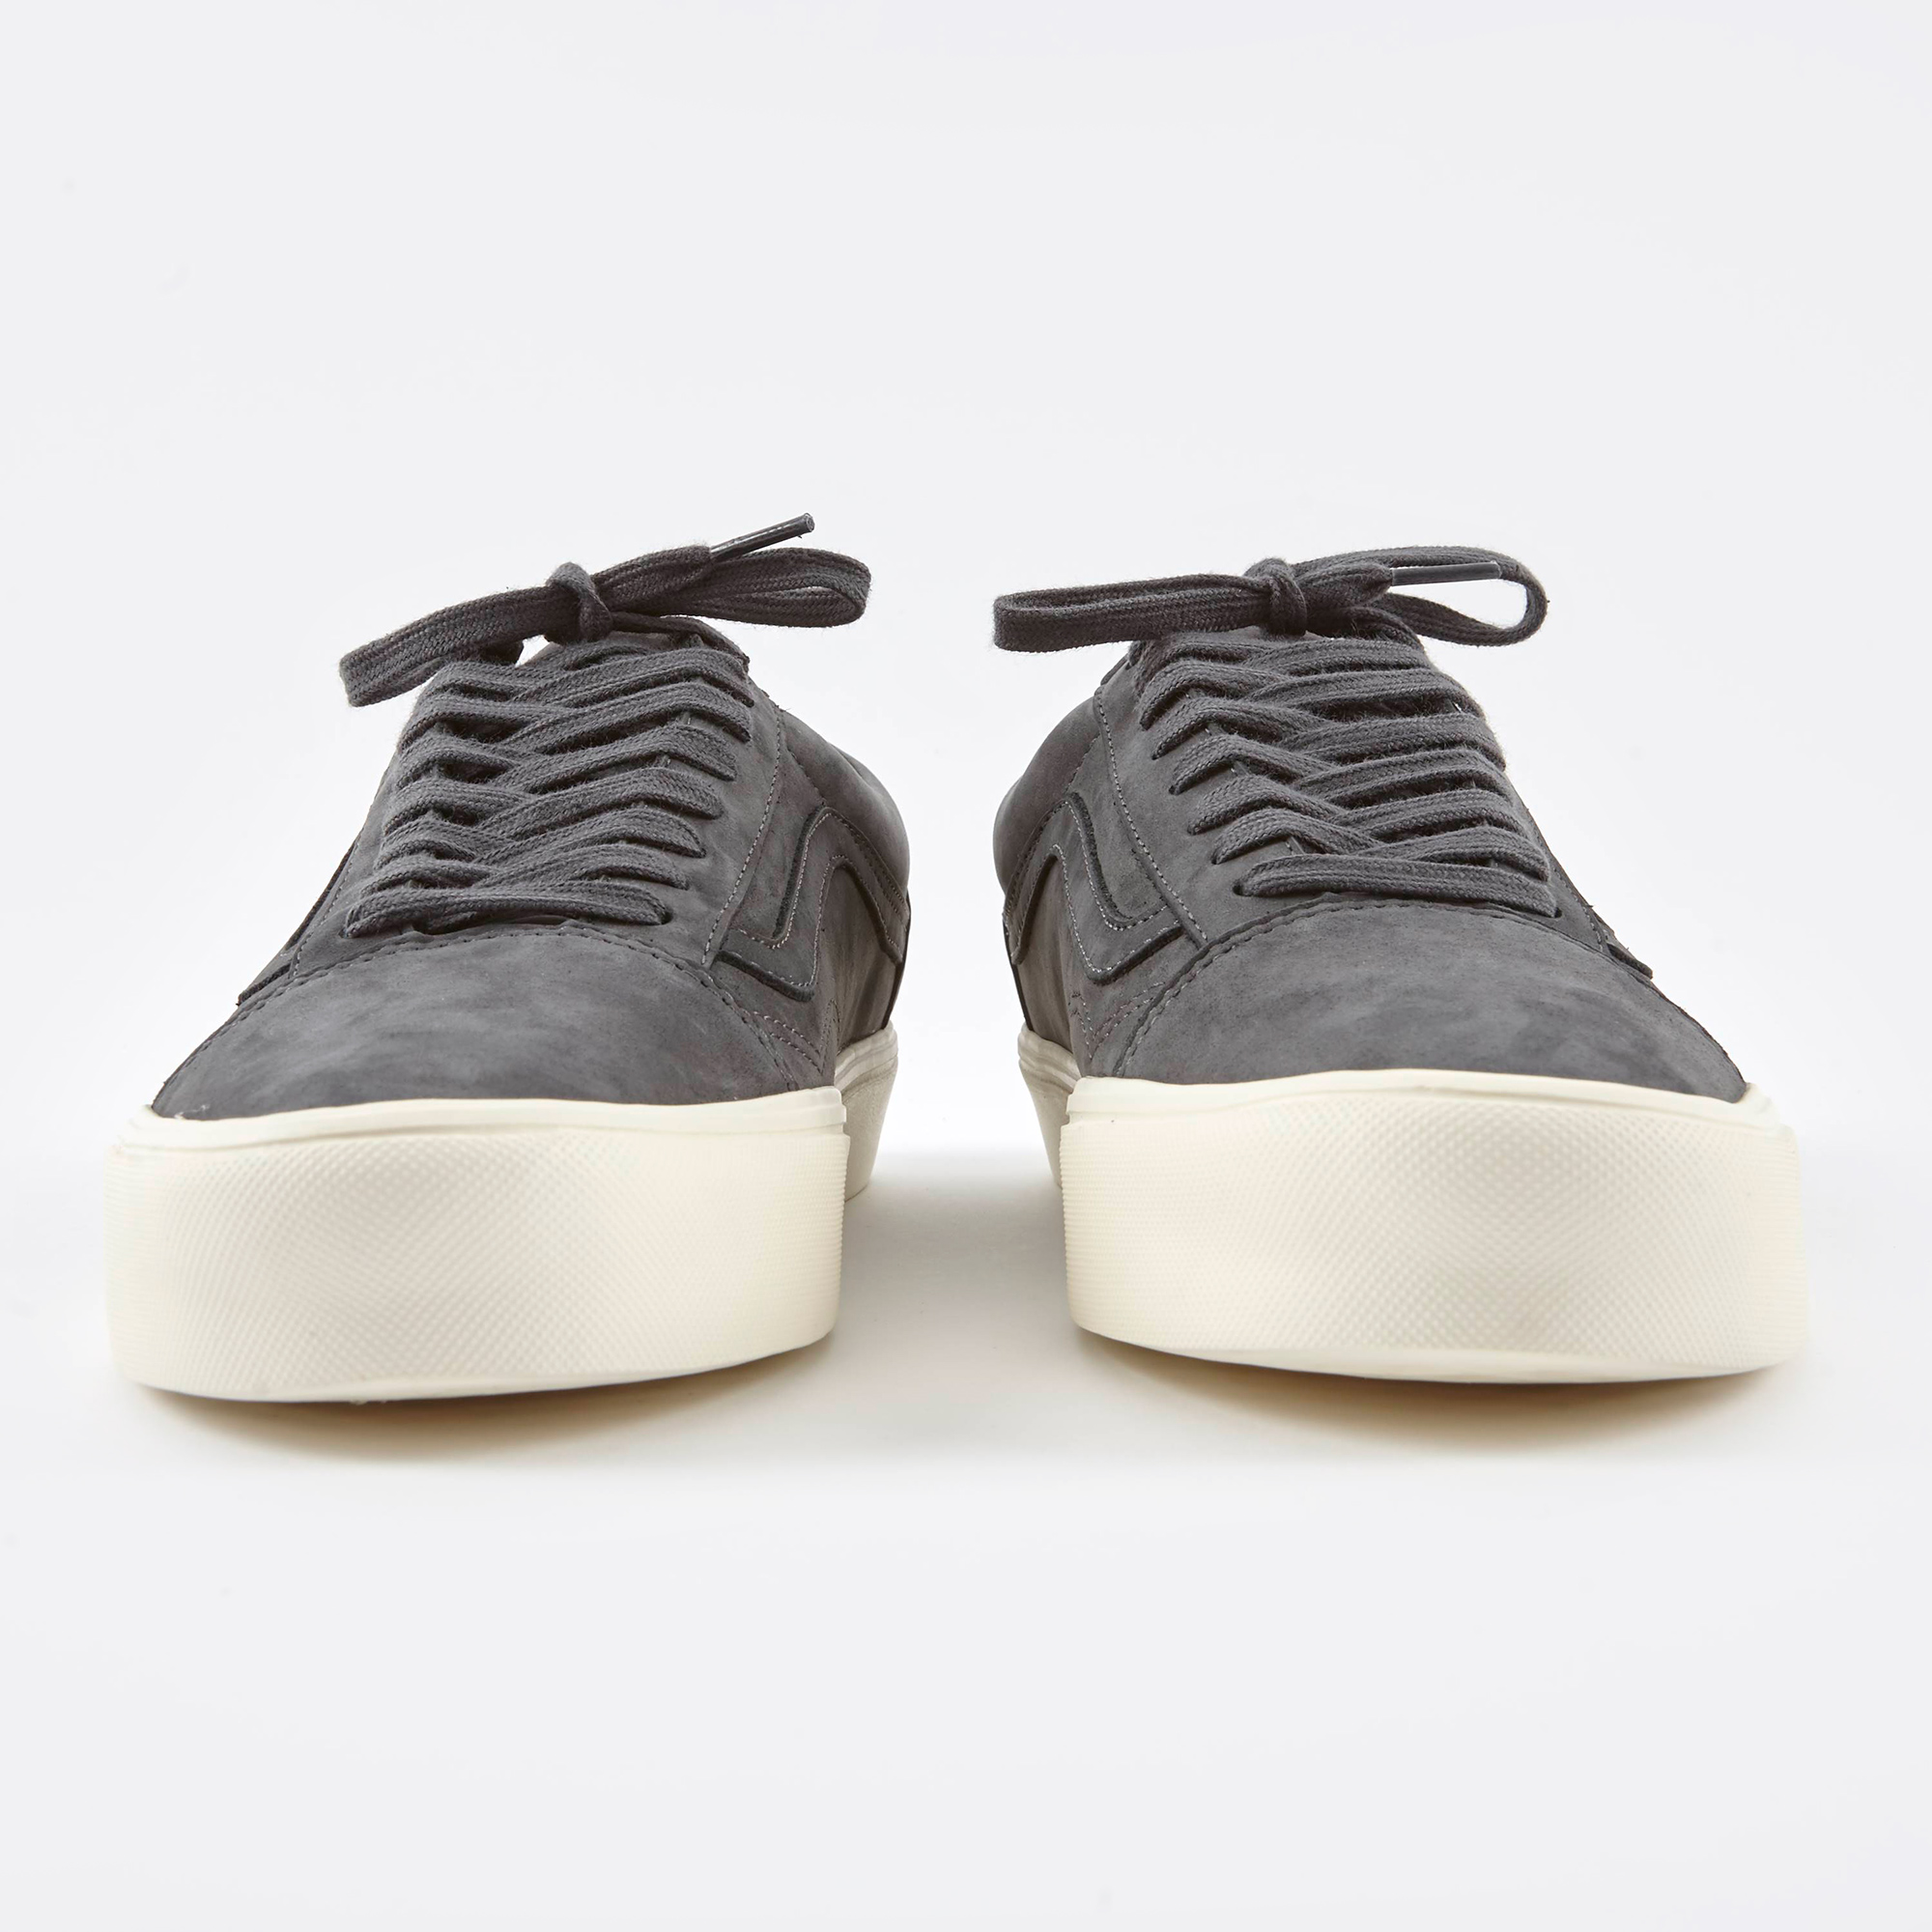 0b6e6d8910 Vans Vault Old Skool Lite LX - Dark Steel